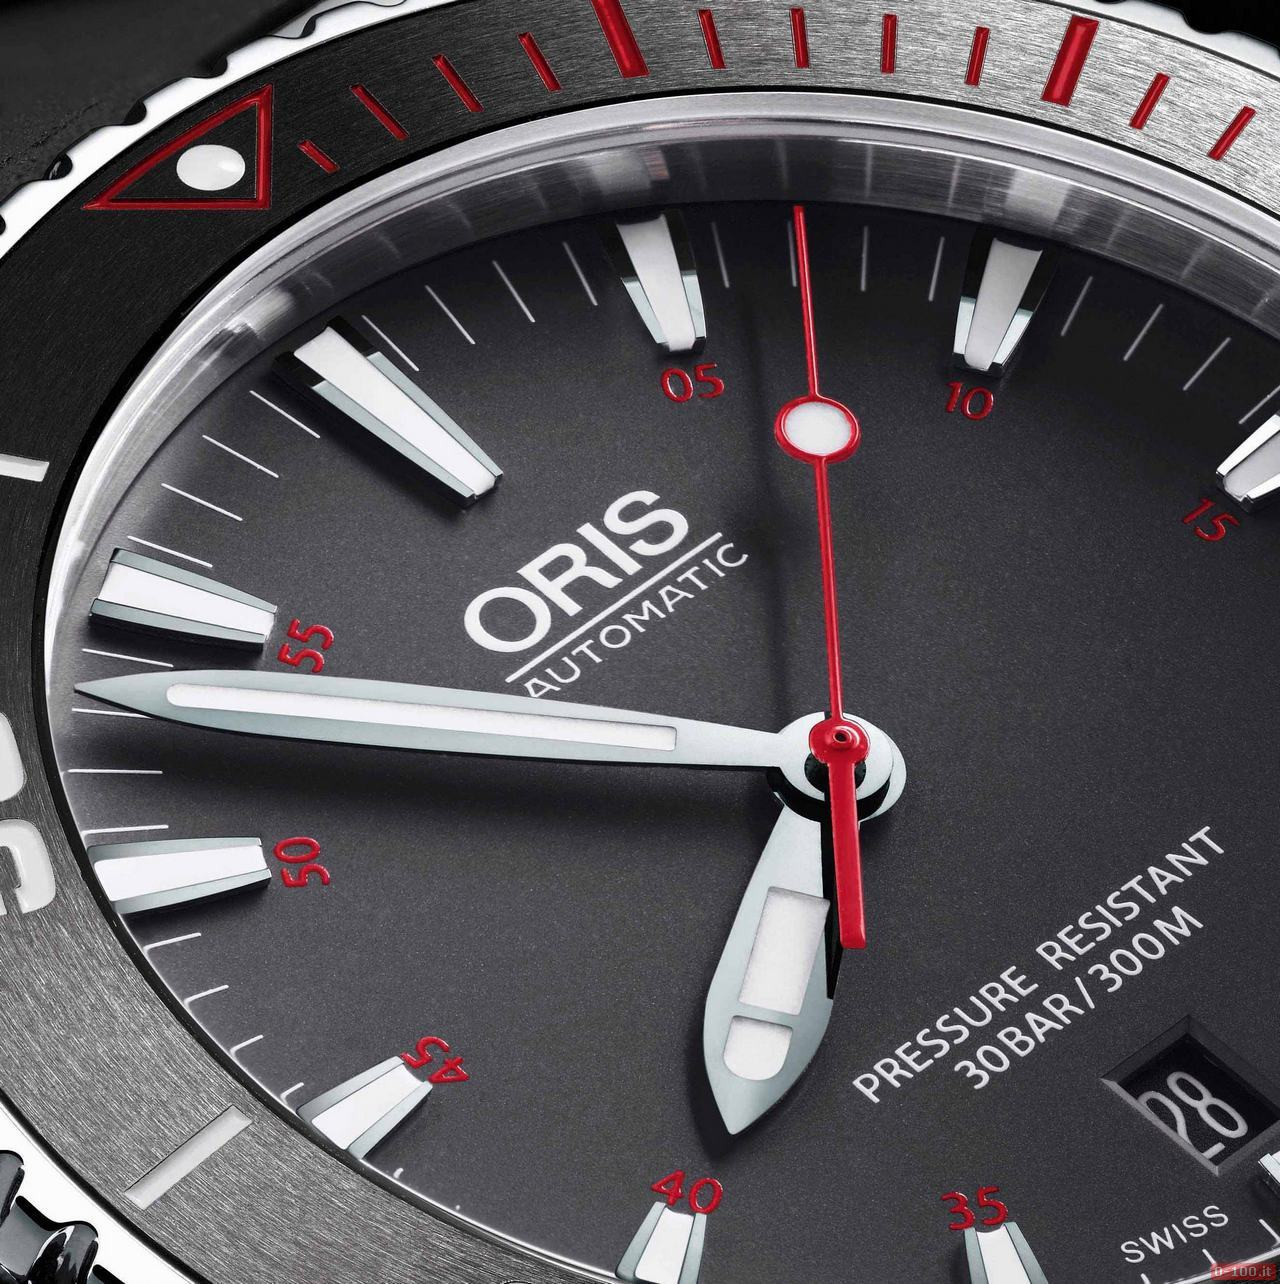 01 733 7653 4183-Set RS - Oris Aquis Red Limited Edition